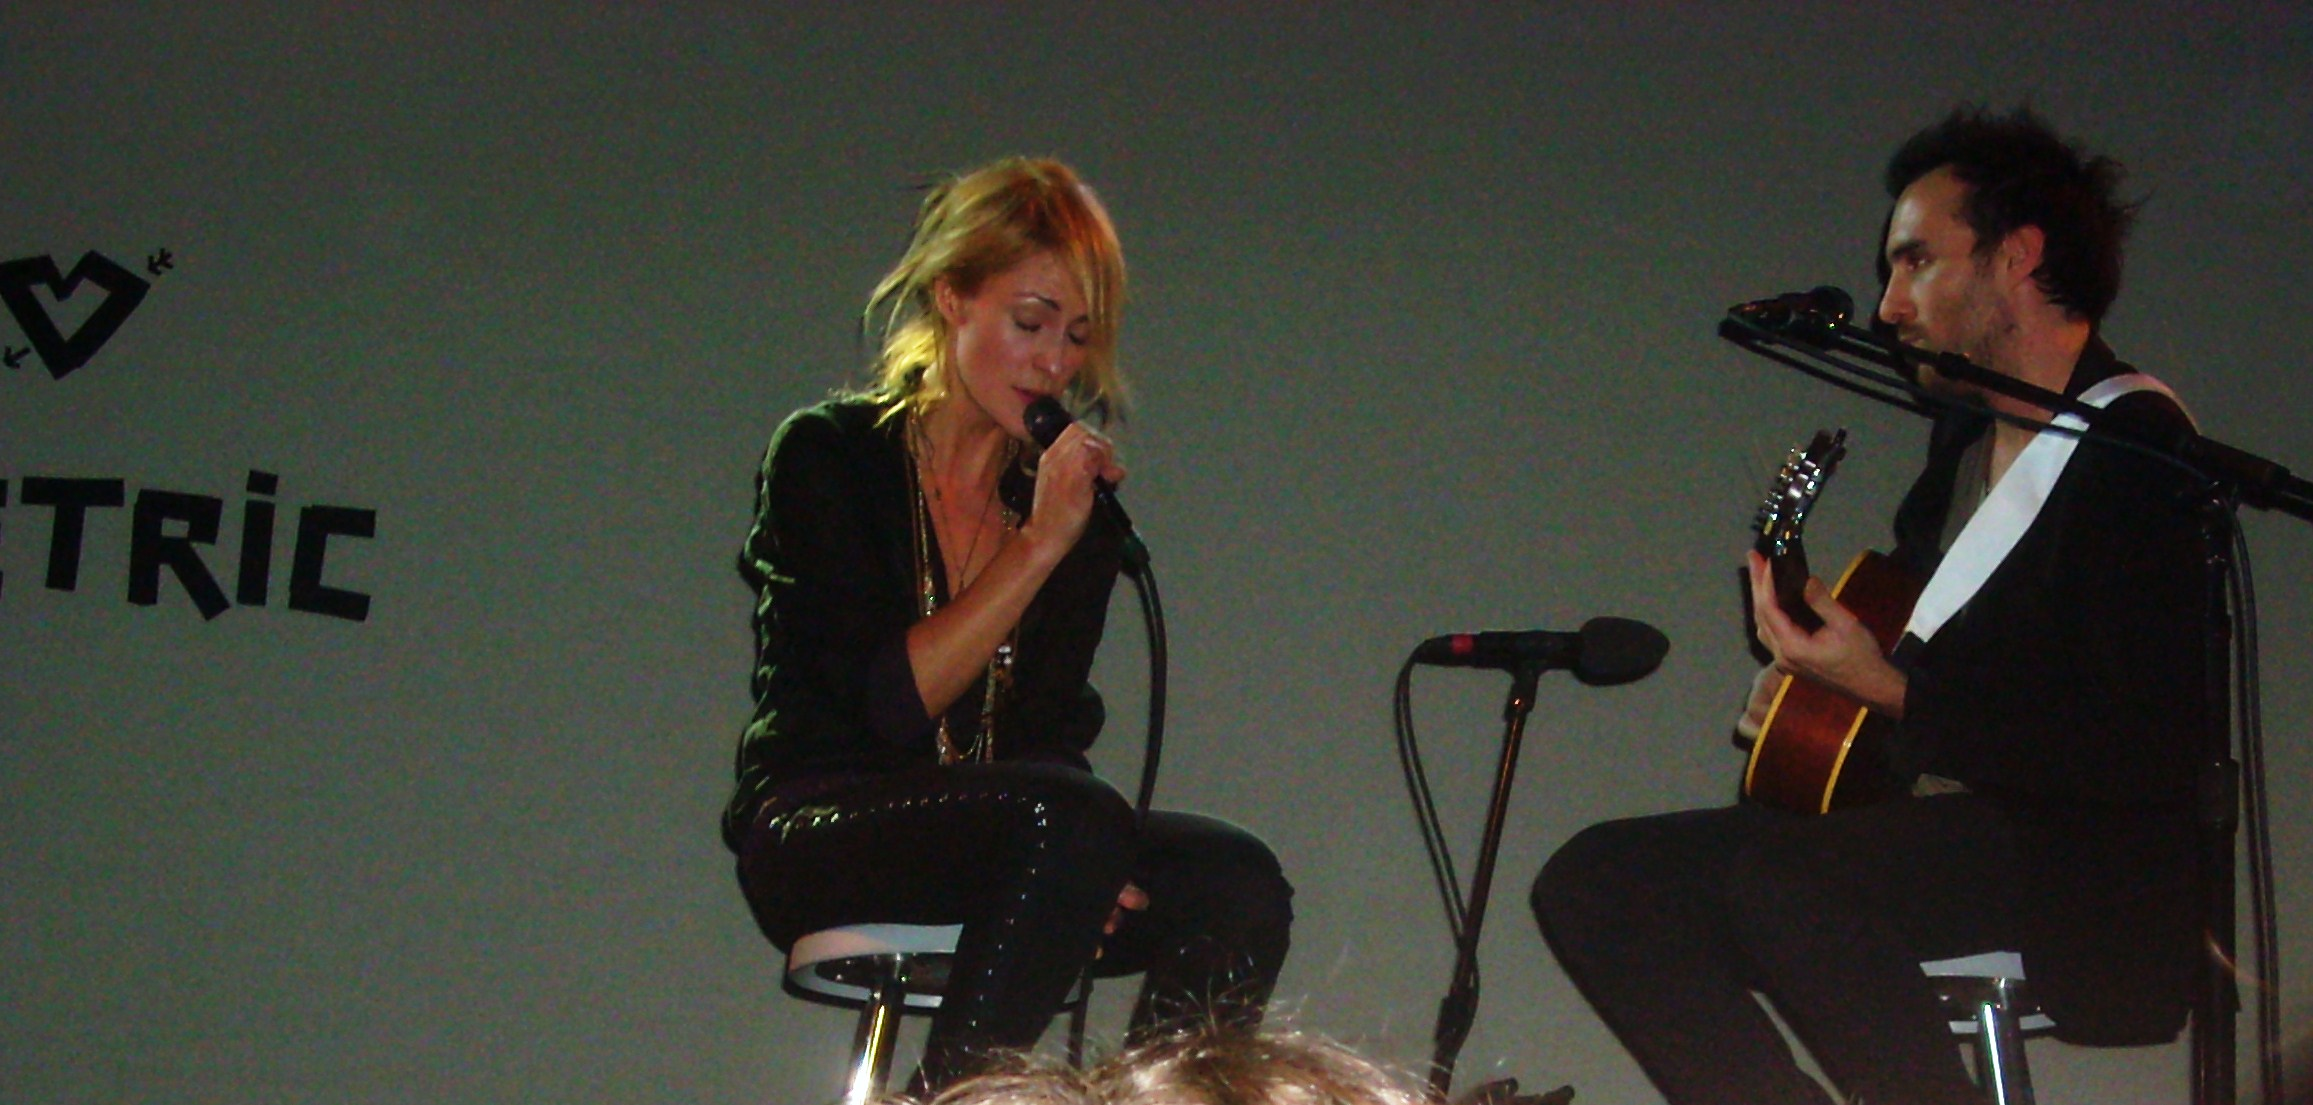 Metric Tour 2011 Dates